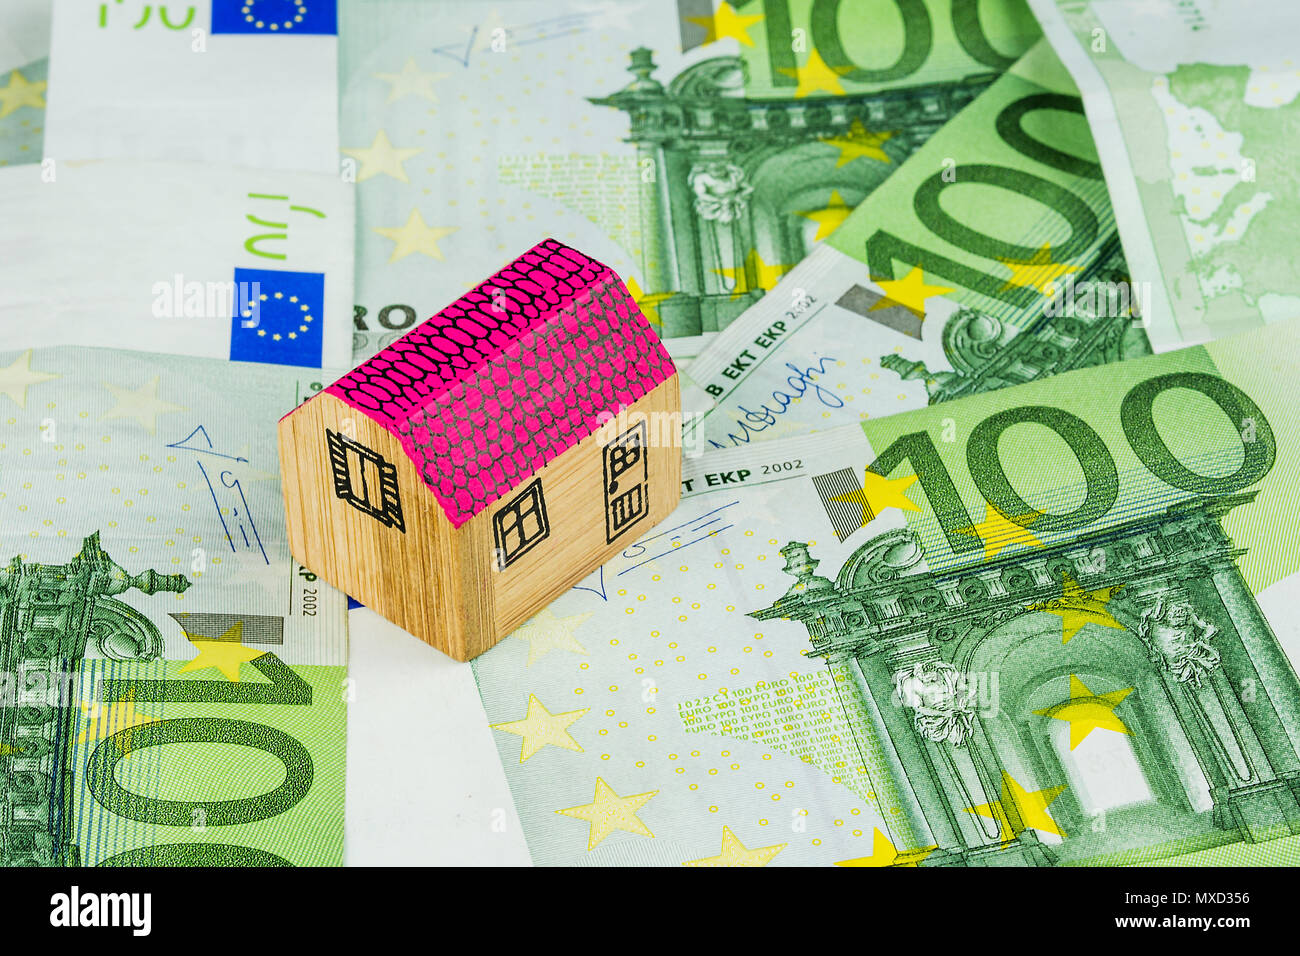 one miniature wooden house laying on one hundred euro banknotes - Stock Image